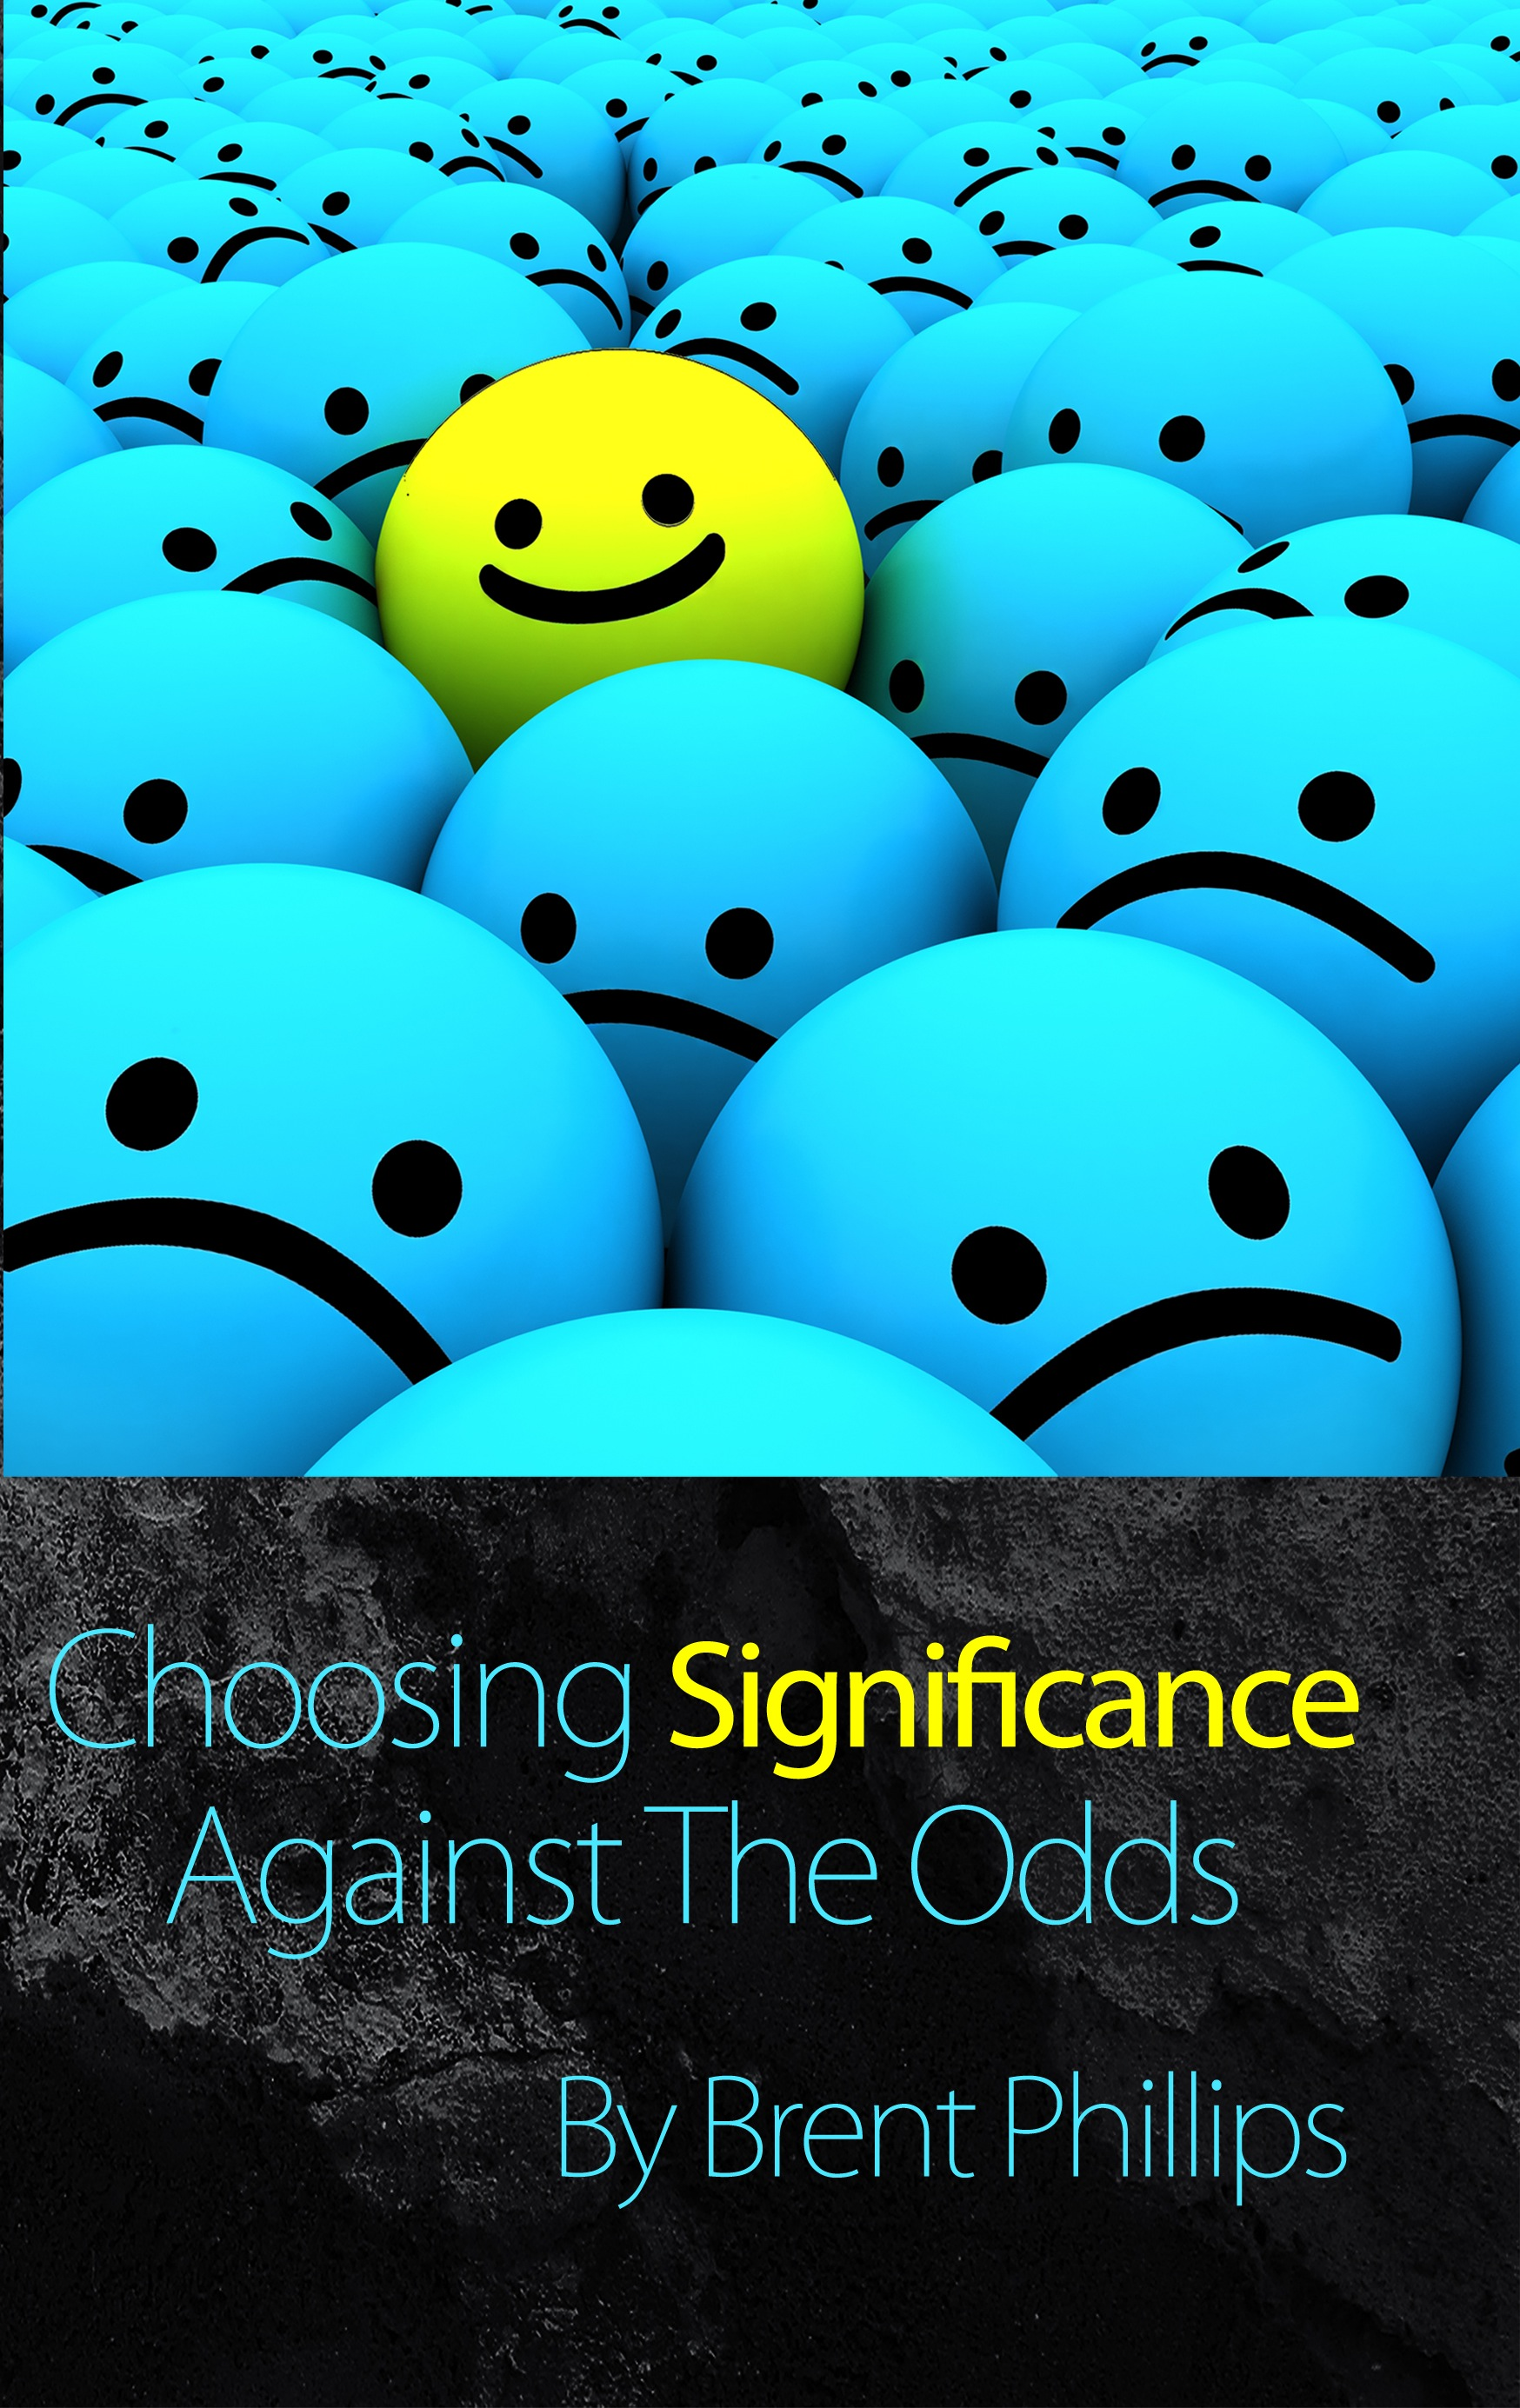 Choosing Significance: Against The Odds